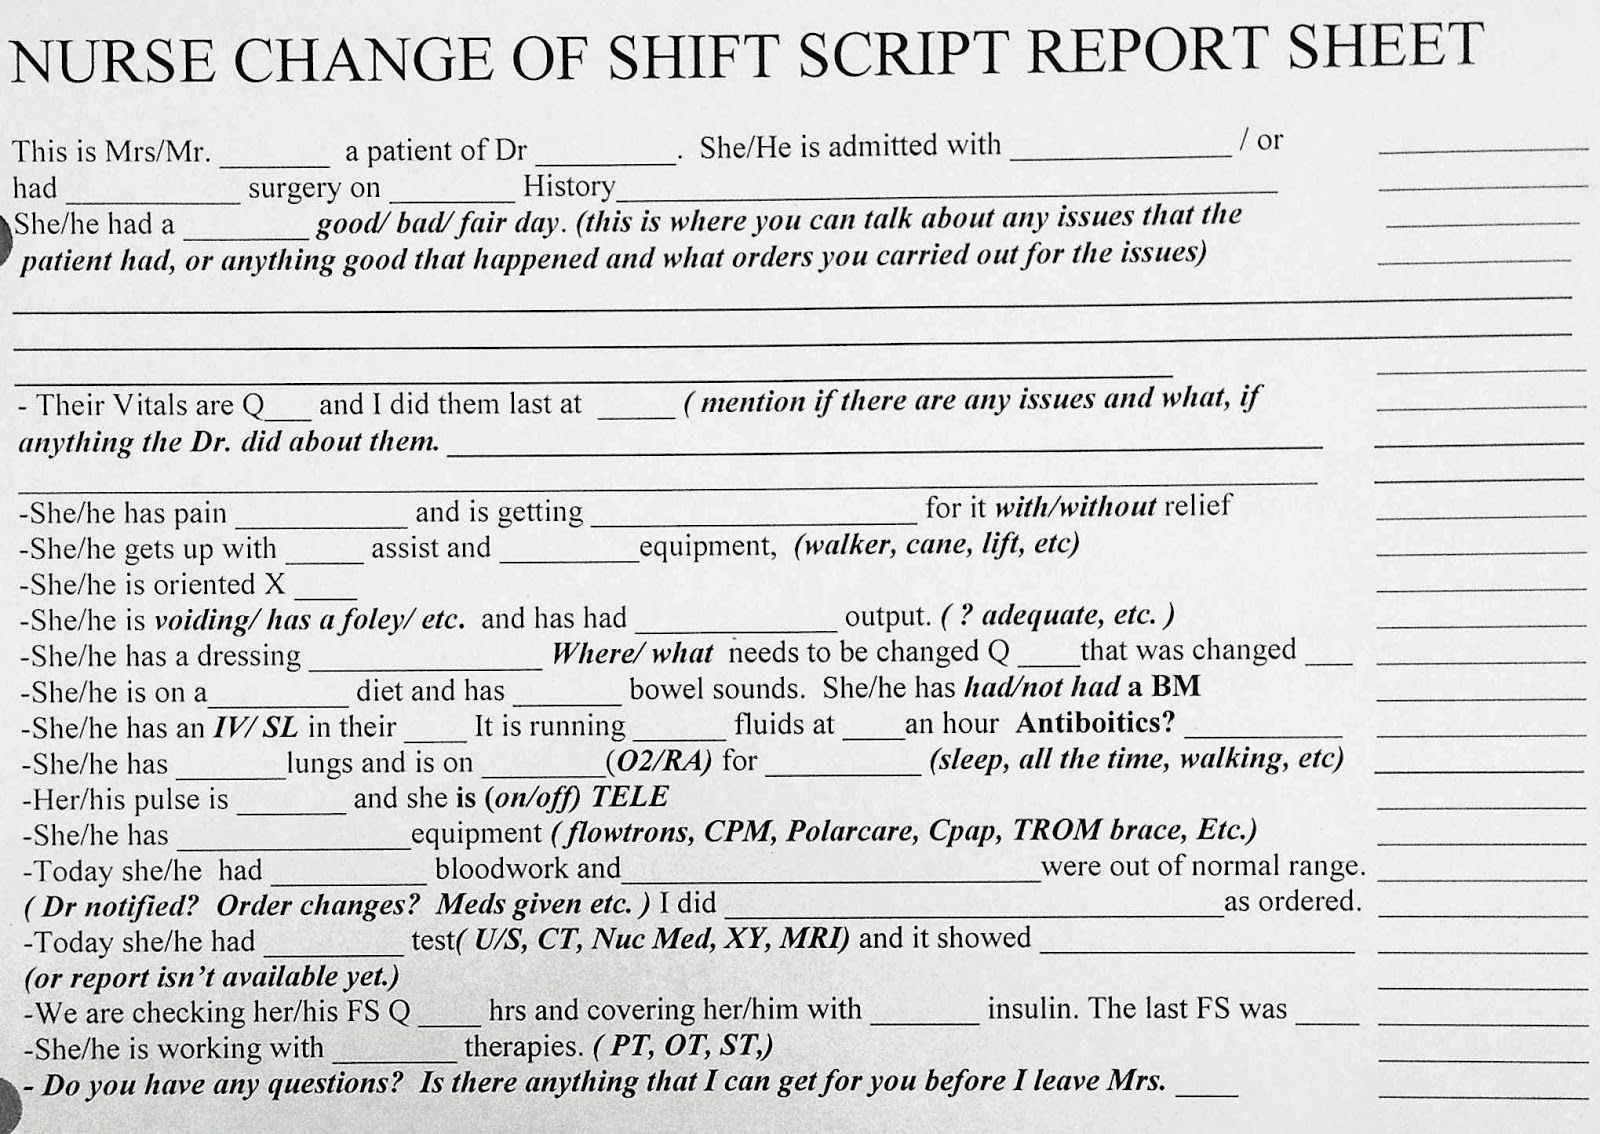 Awesome New Grad Or Experienced Nurse Change Of Shift Bedside Report